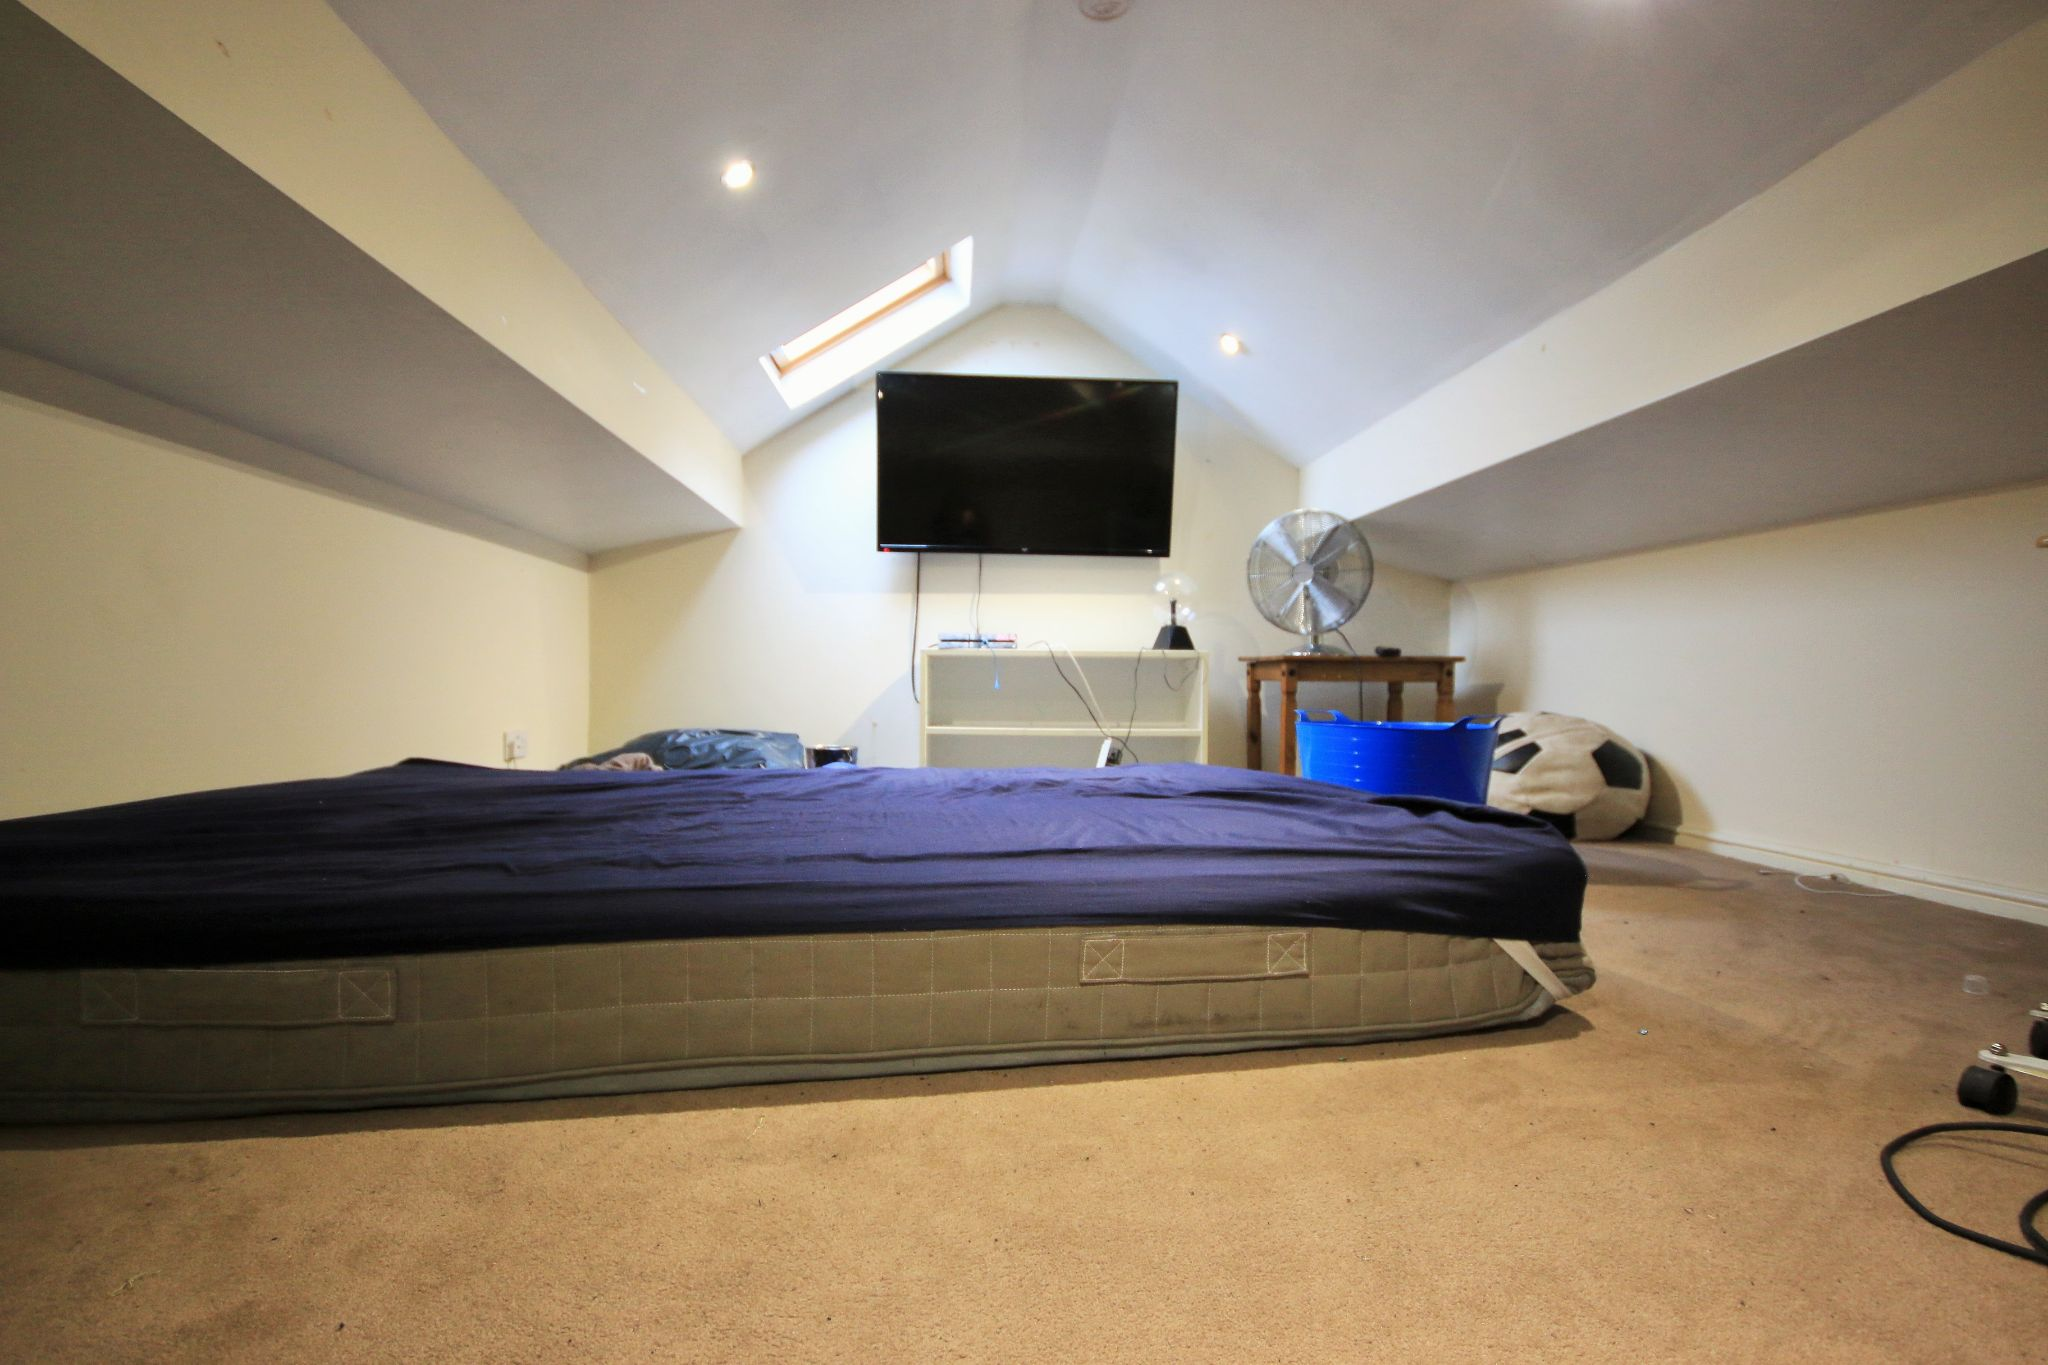 3 Bedroom Semi-detached House For Sale - Photograph 14